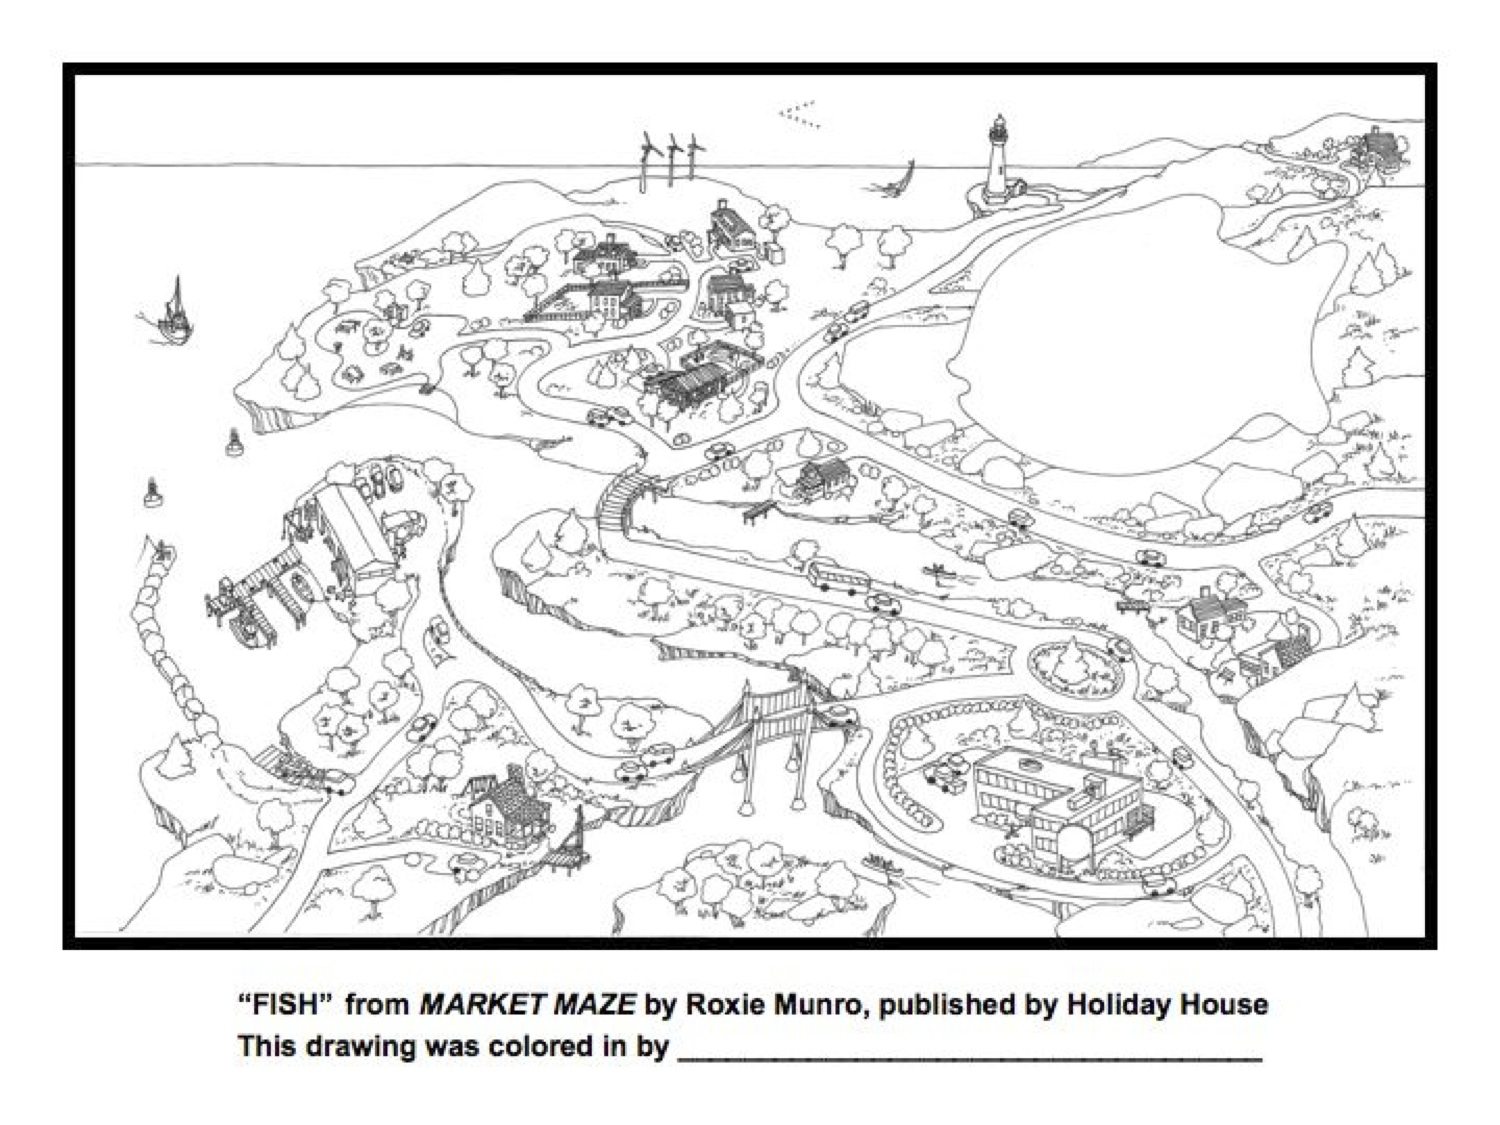 mazes and coloring pages roxie munro author artist